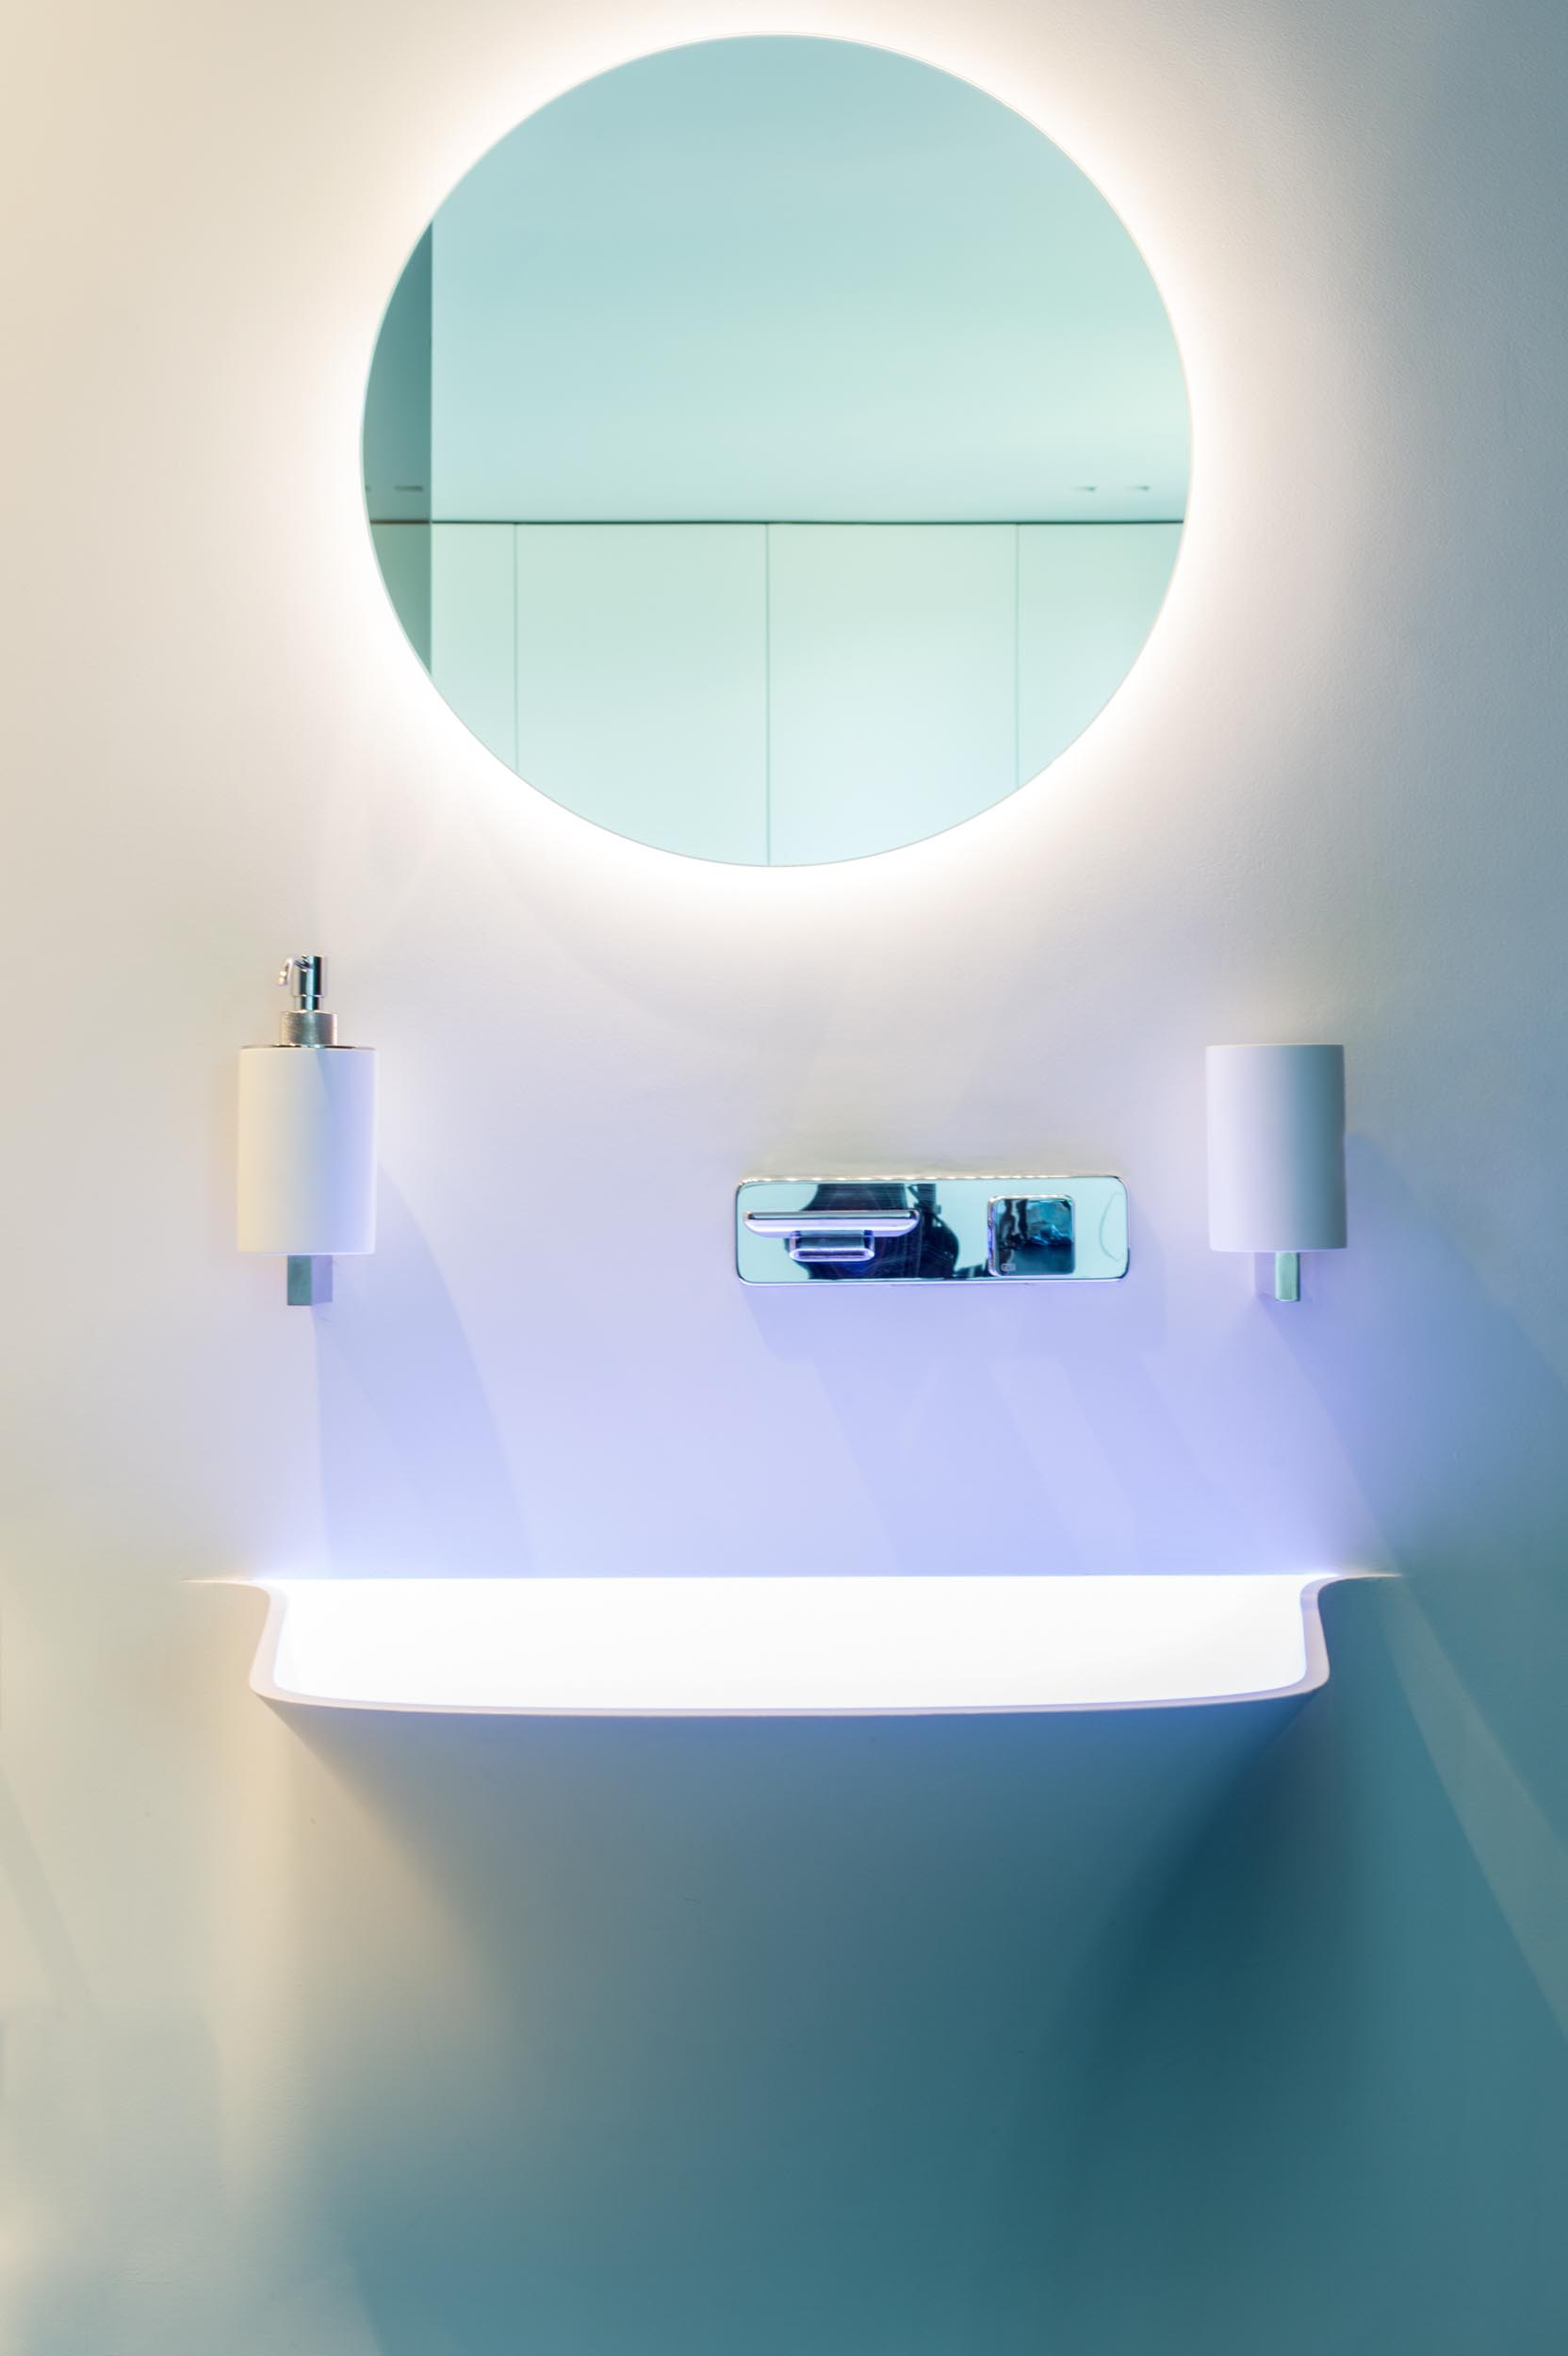 A modern bathroom with a seamless  white vanity and backlit round mirror.